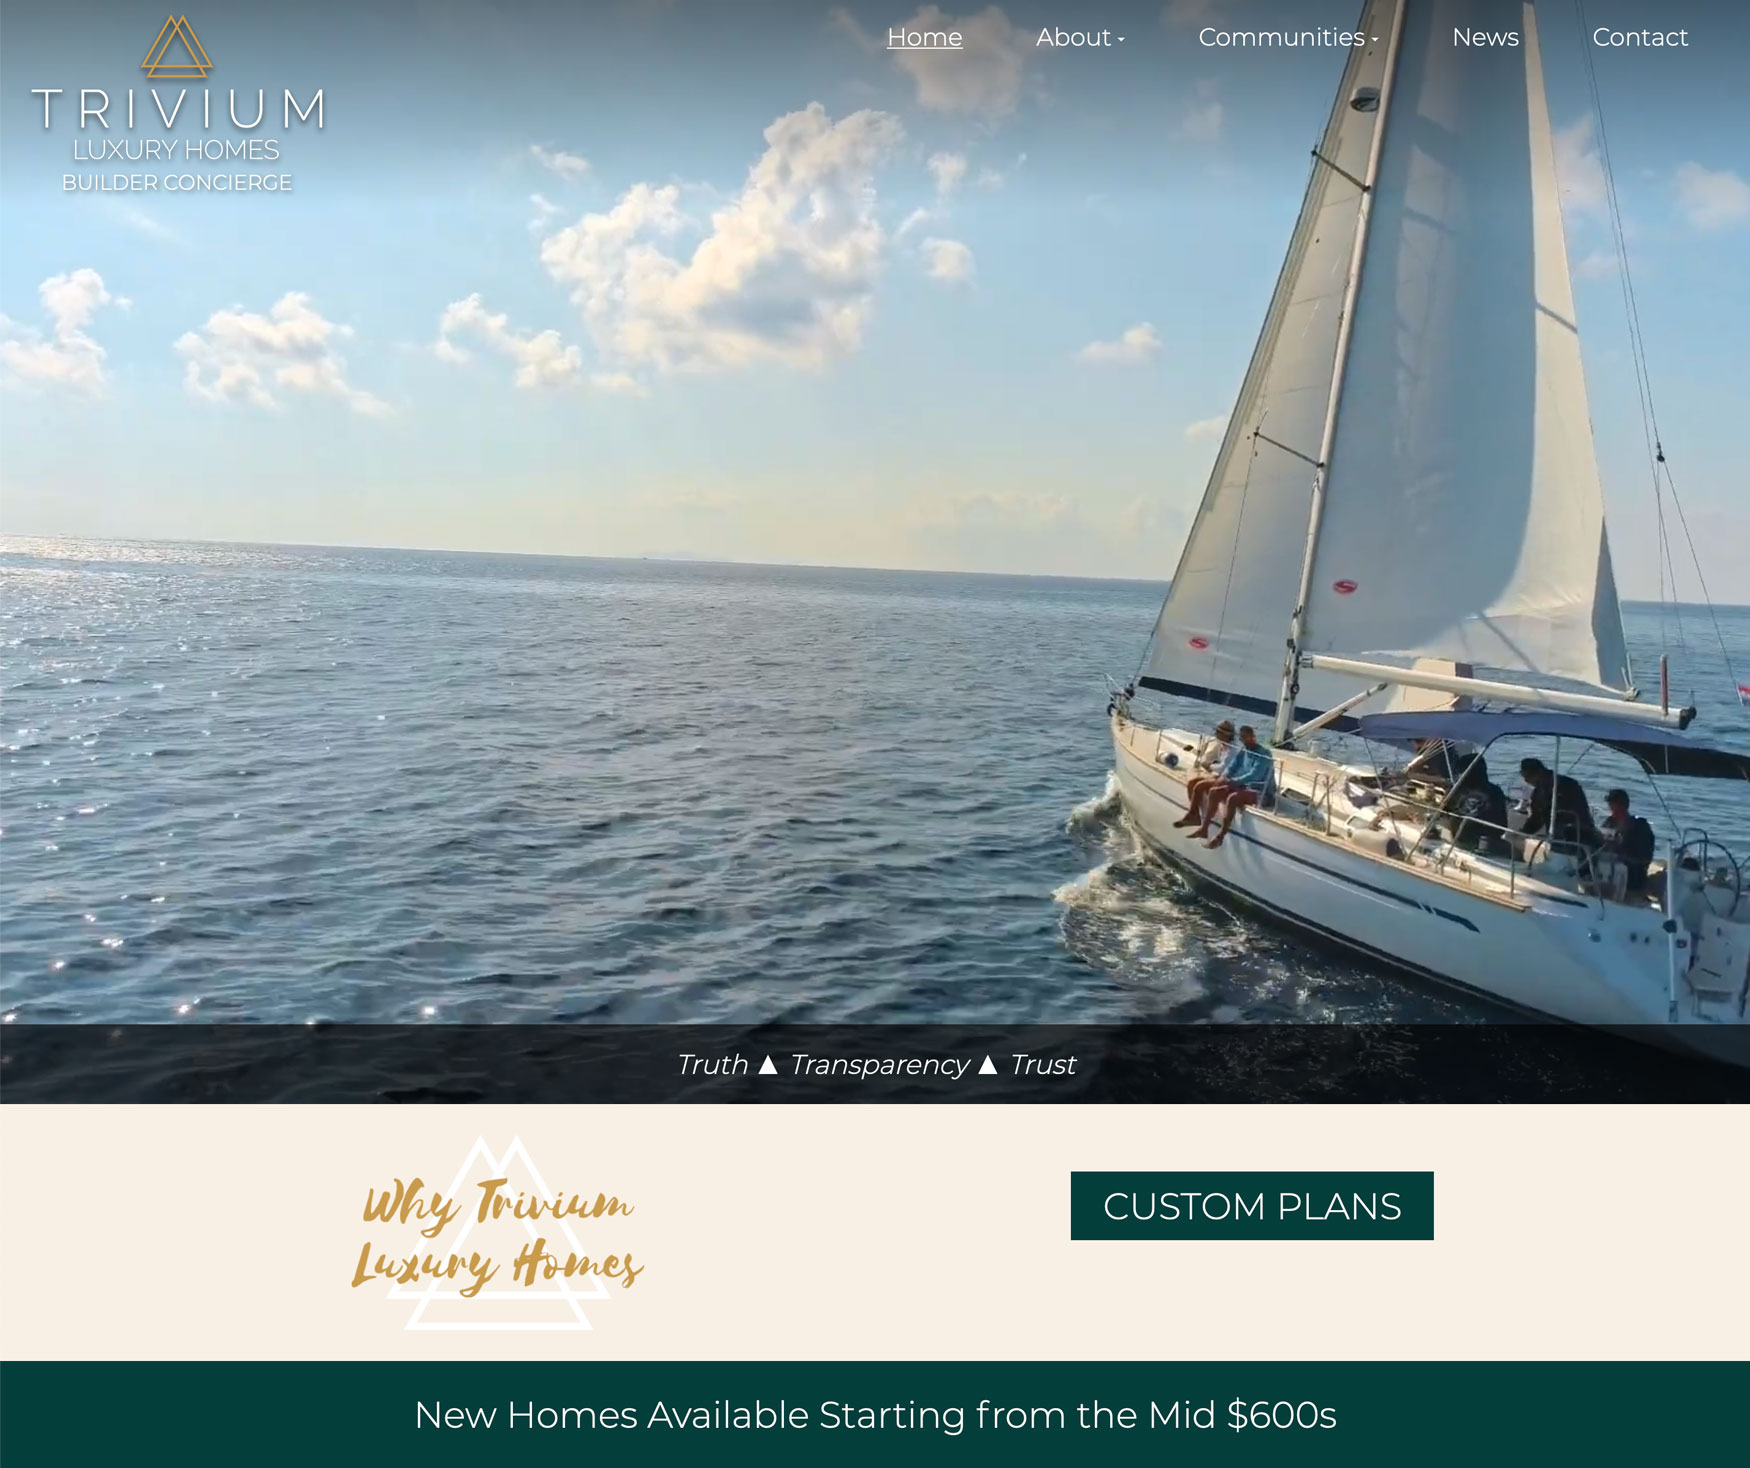 New Website Launched: Trivium Luxury Homes